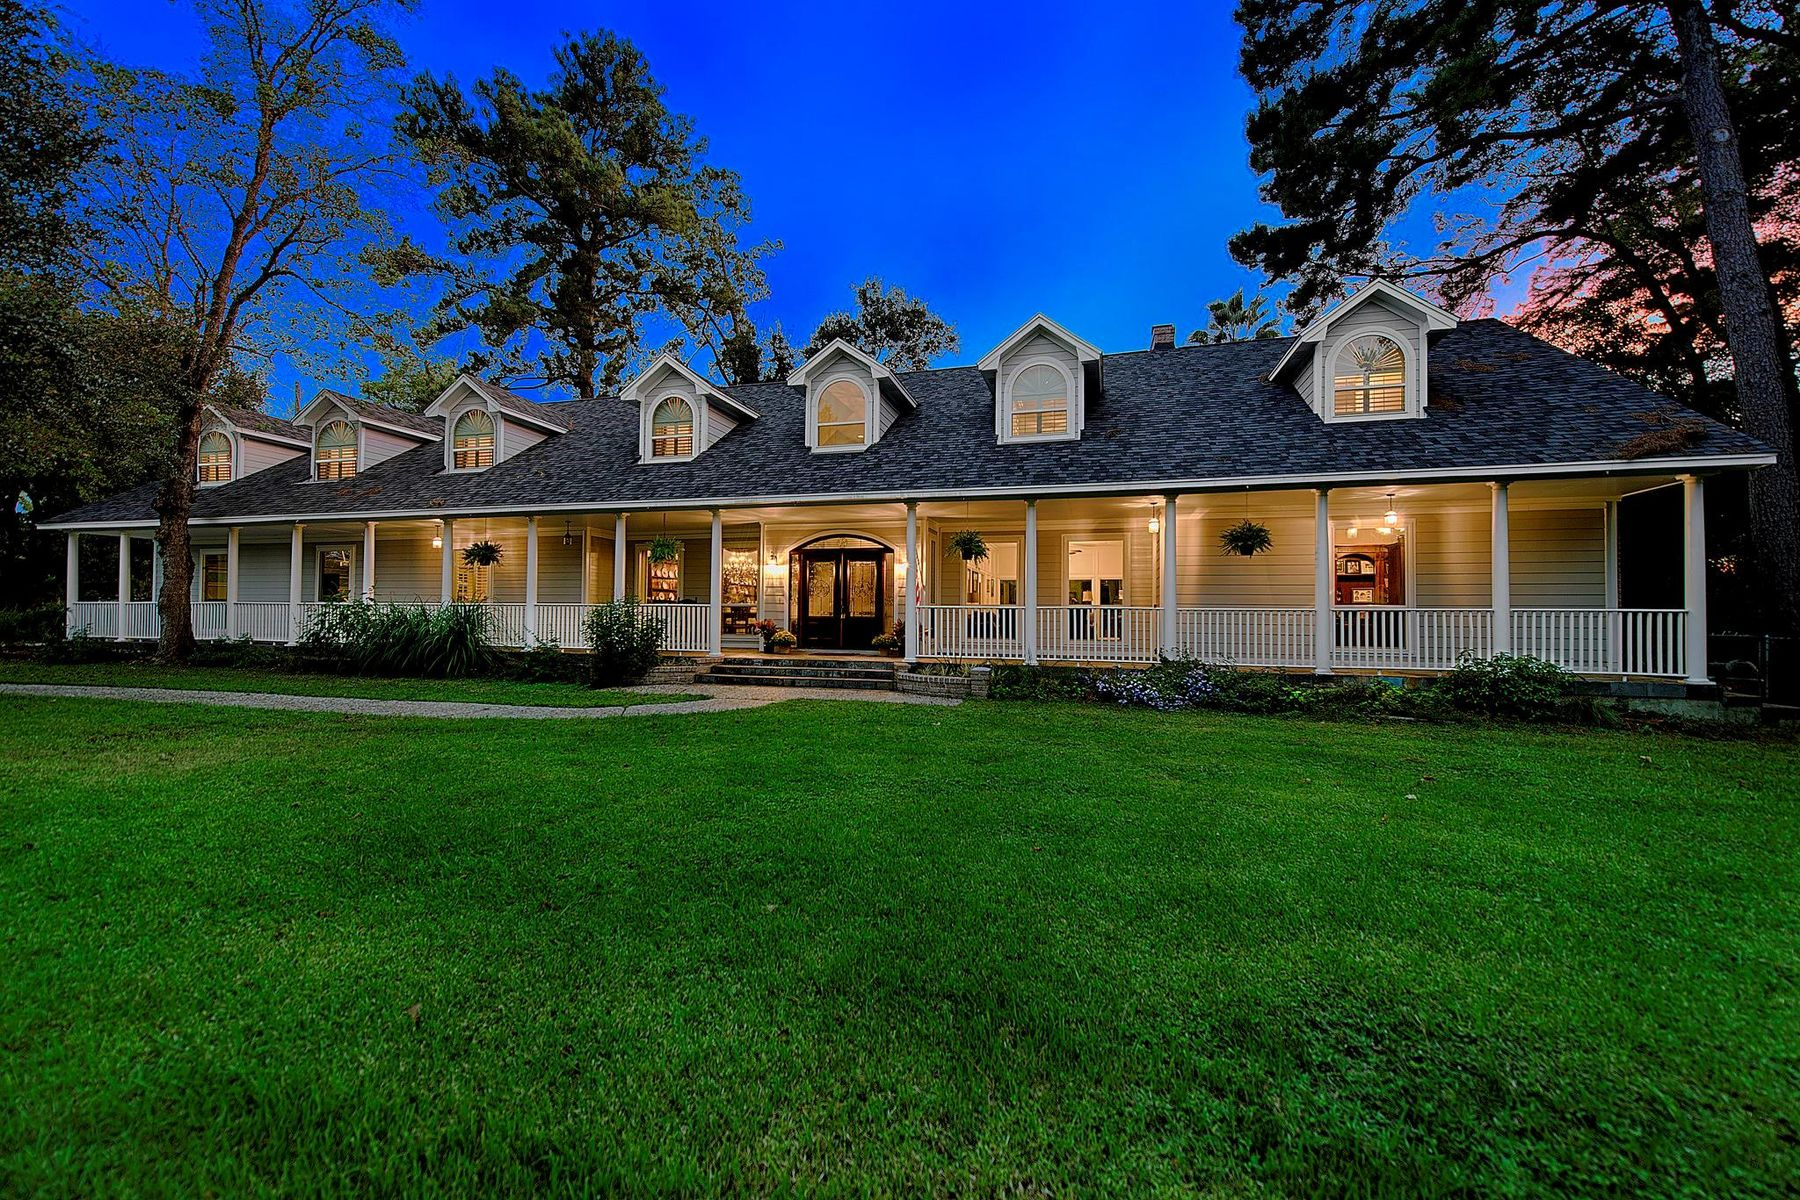 Single Family Homes for Sale at 8202 Creekside Timbers Drive Spring, Texas 77379 United States